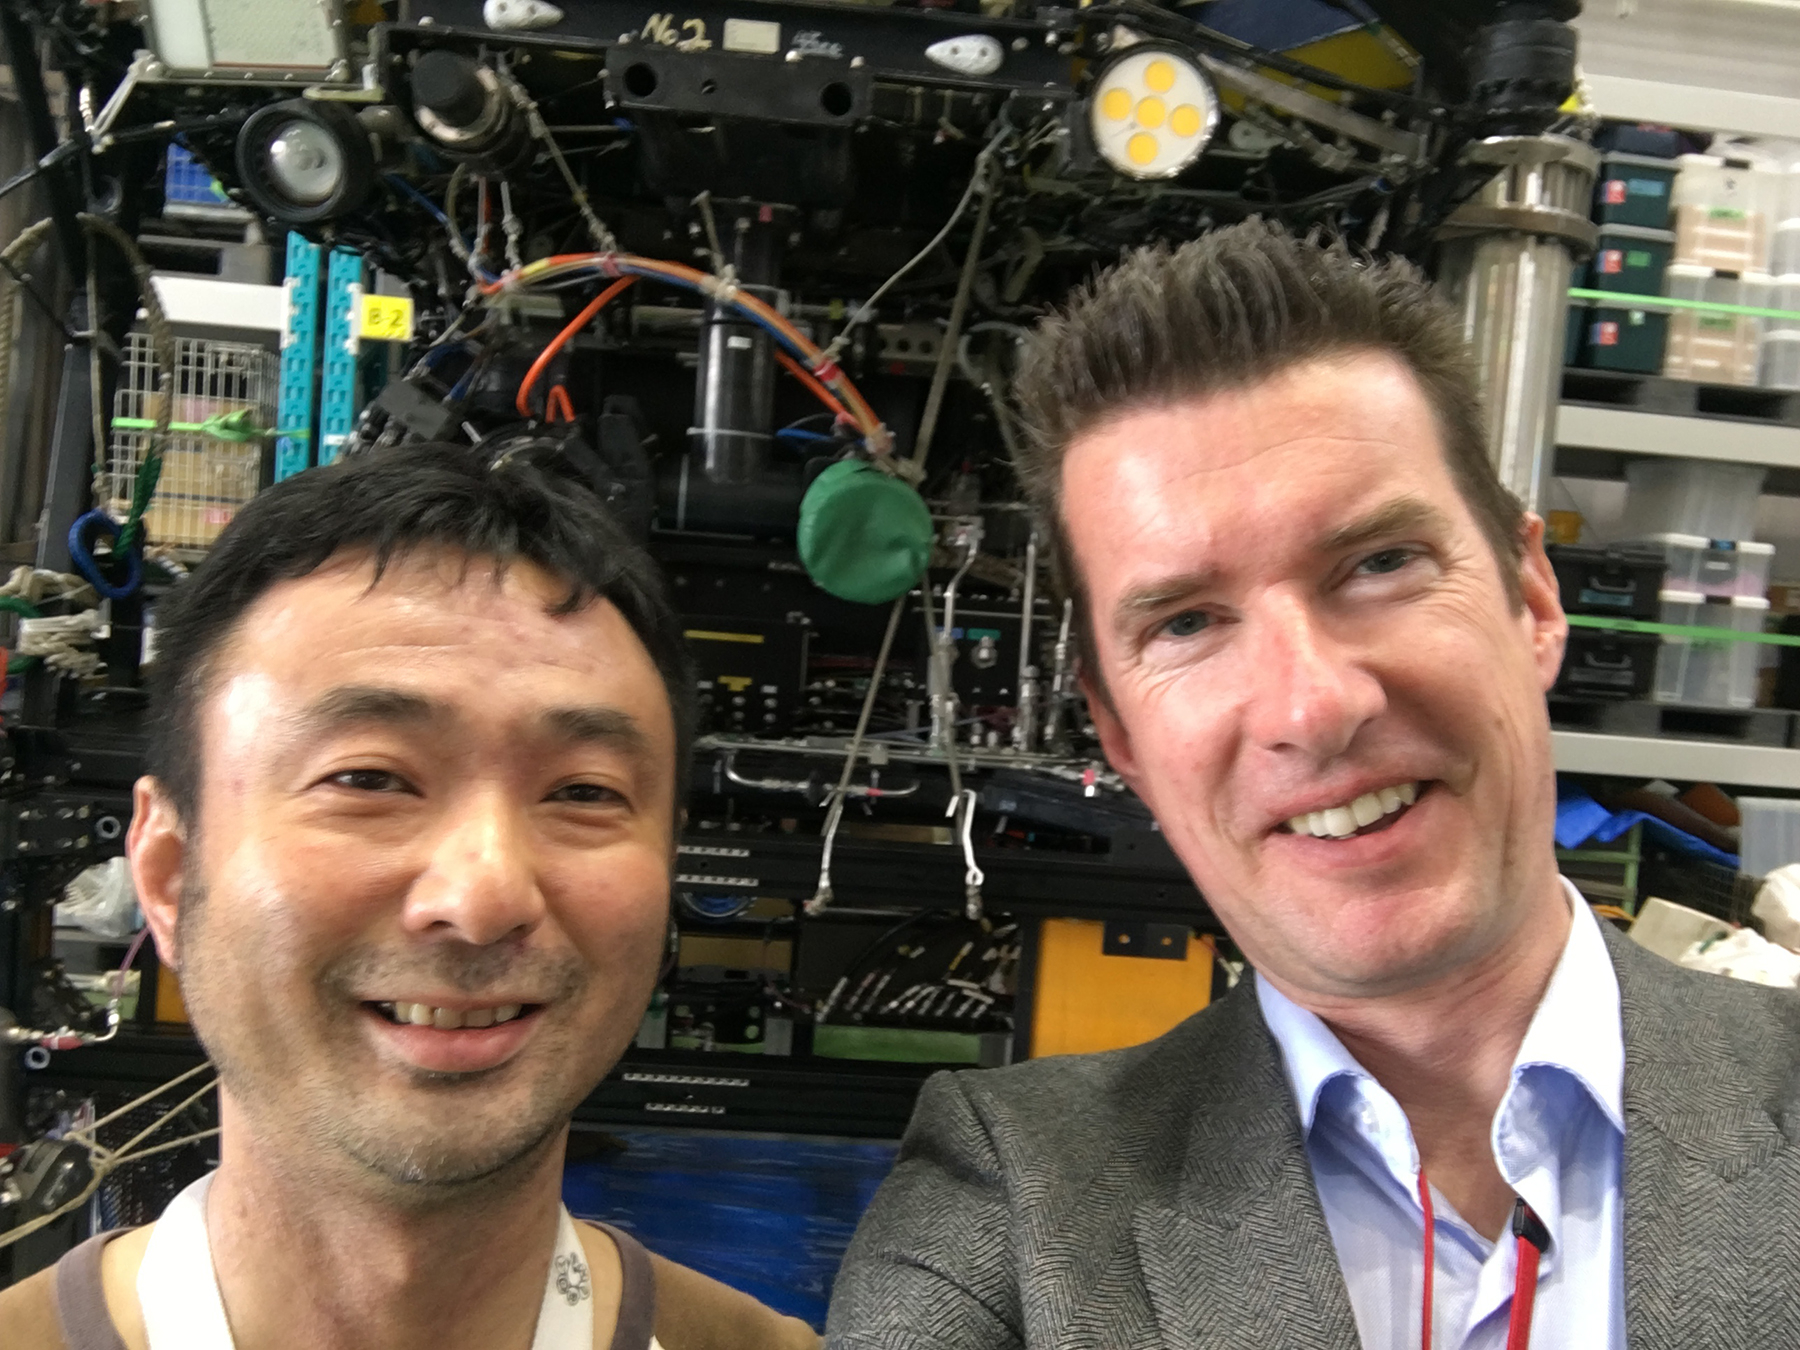 Dr. Takashi Toyofuku, of JAMSTEC and Prof. Dr. Gert-Jan Reichart of NIOZ in front of JAMSTEC Remotely Operated Vehicle (ROV) in Yokohama.